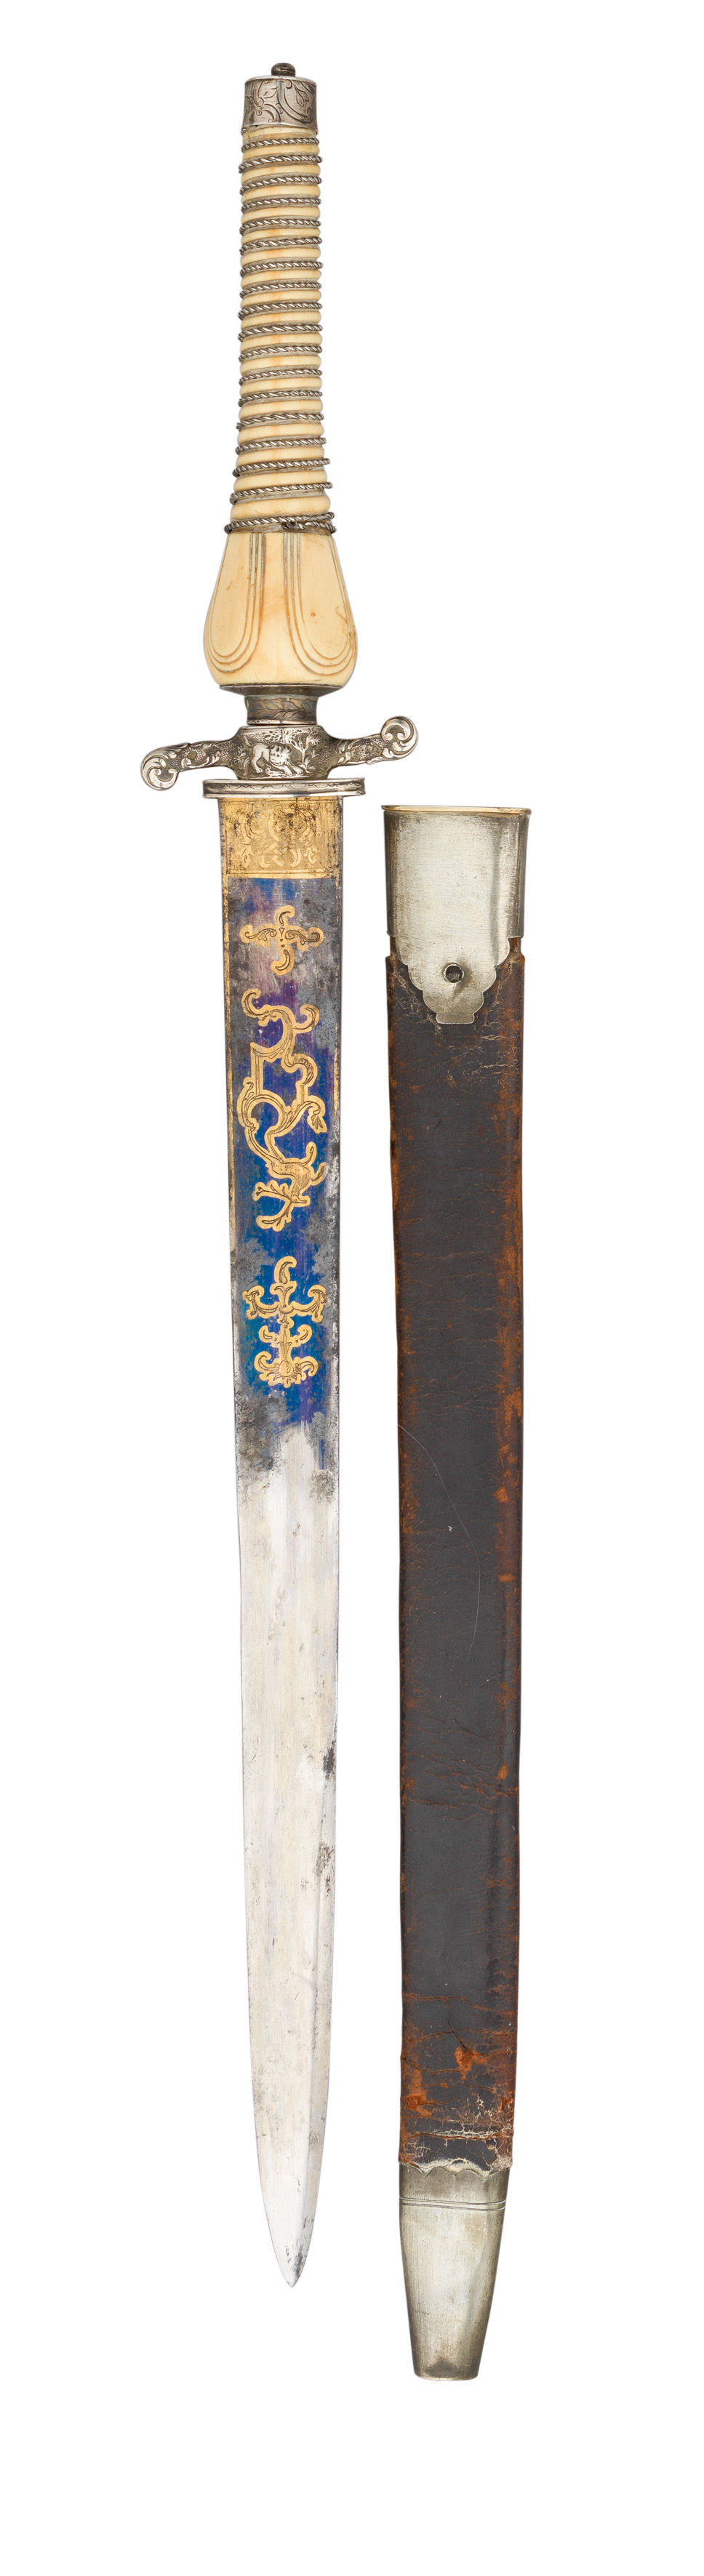 ˜A FRENCH IVORY-AND SILVER-MOUNTED COMBINED HUNTING KNIFE AND PLUG BAYONET^ THIRD QUARTER OF THE 18T